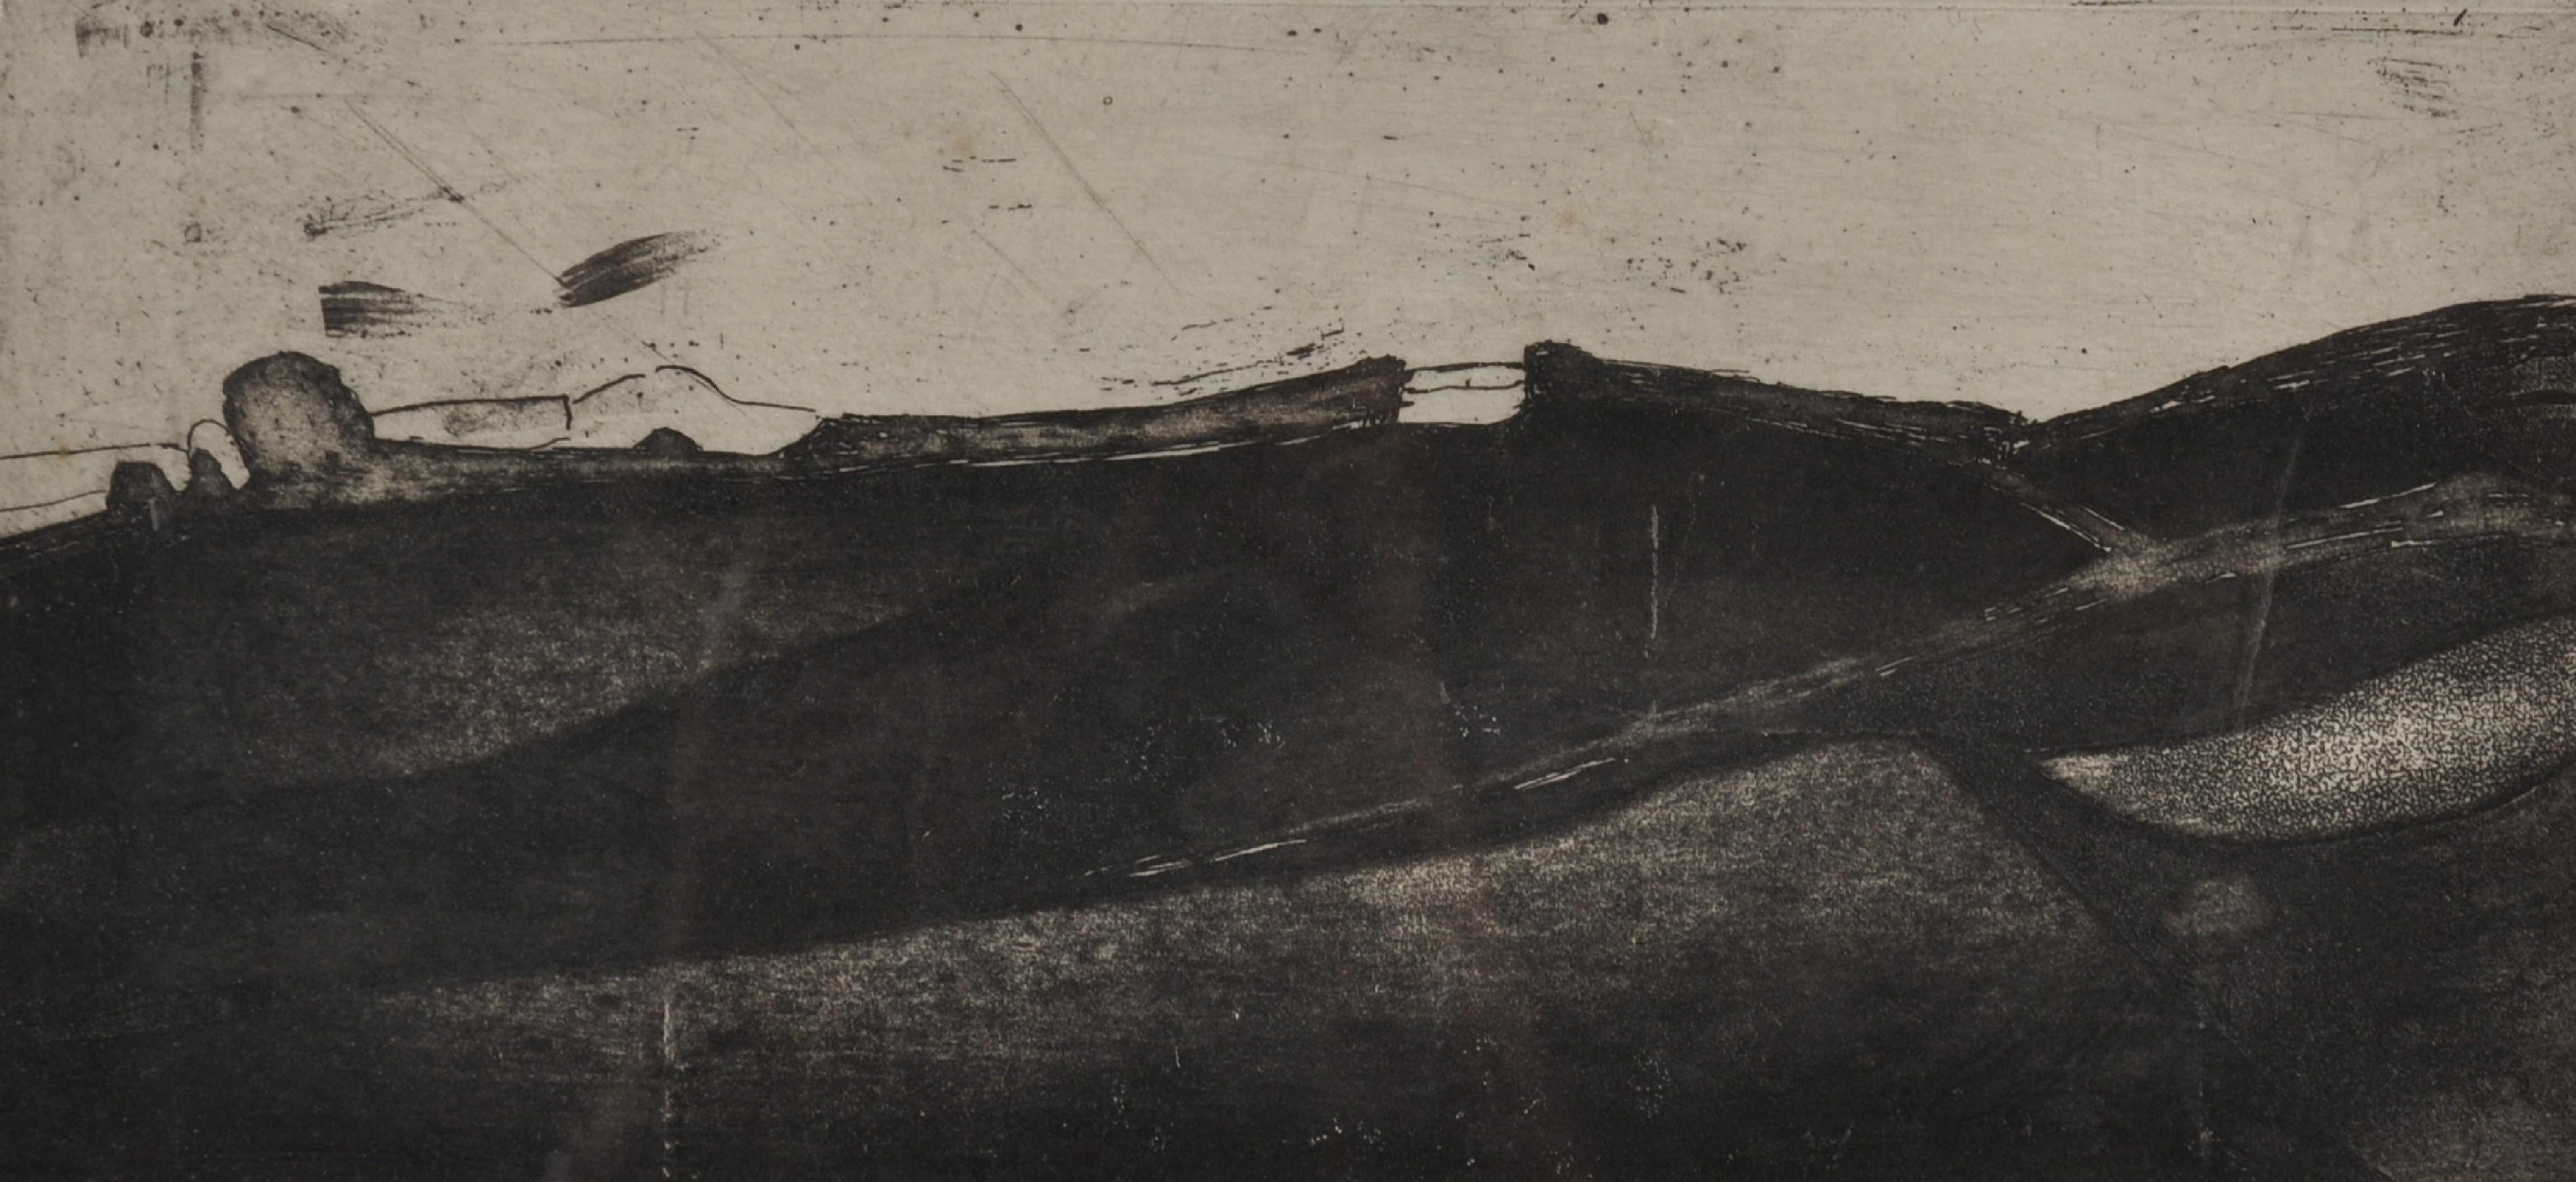 """Sara John (1946- ) British. An Abstract Landscape, Etching, Signed and Dated 1968 in Pencil, 5.5"""""""